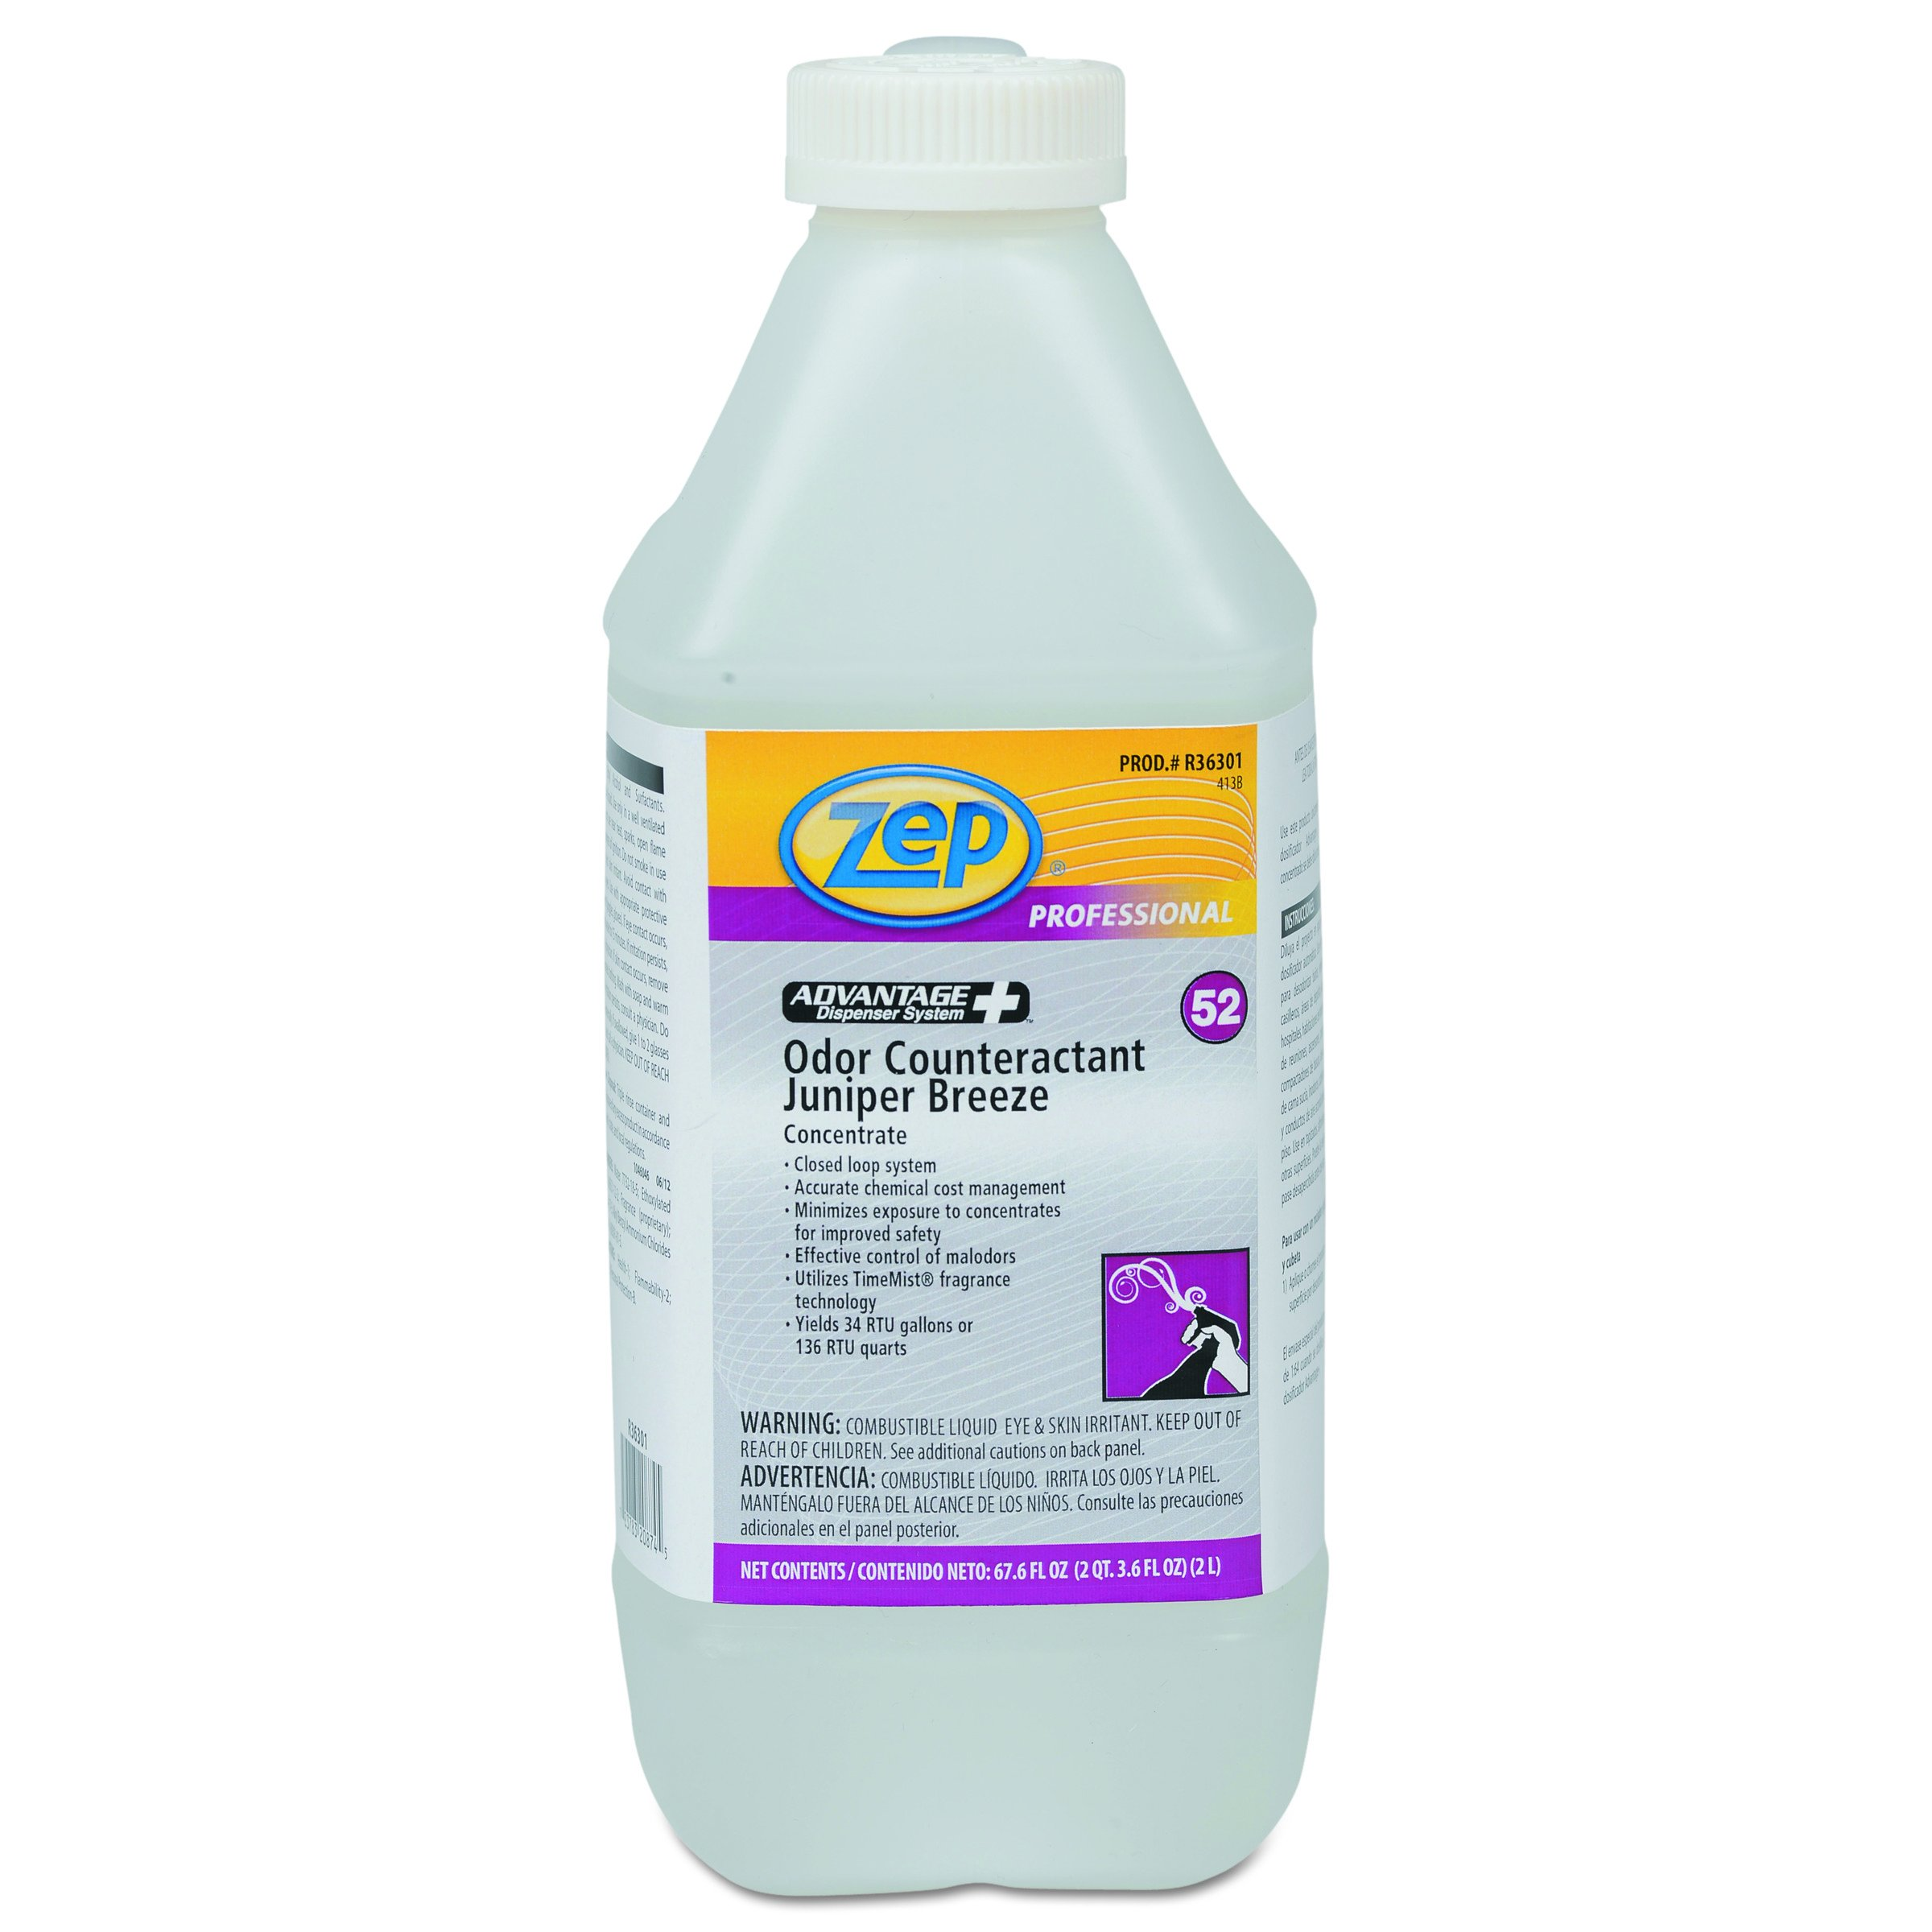 Zep Professional R36301CT Concentrated Odor Counteractant, Juniper Breeze, 67.6 oz Bottle (Case of 4)